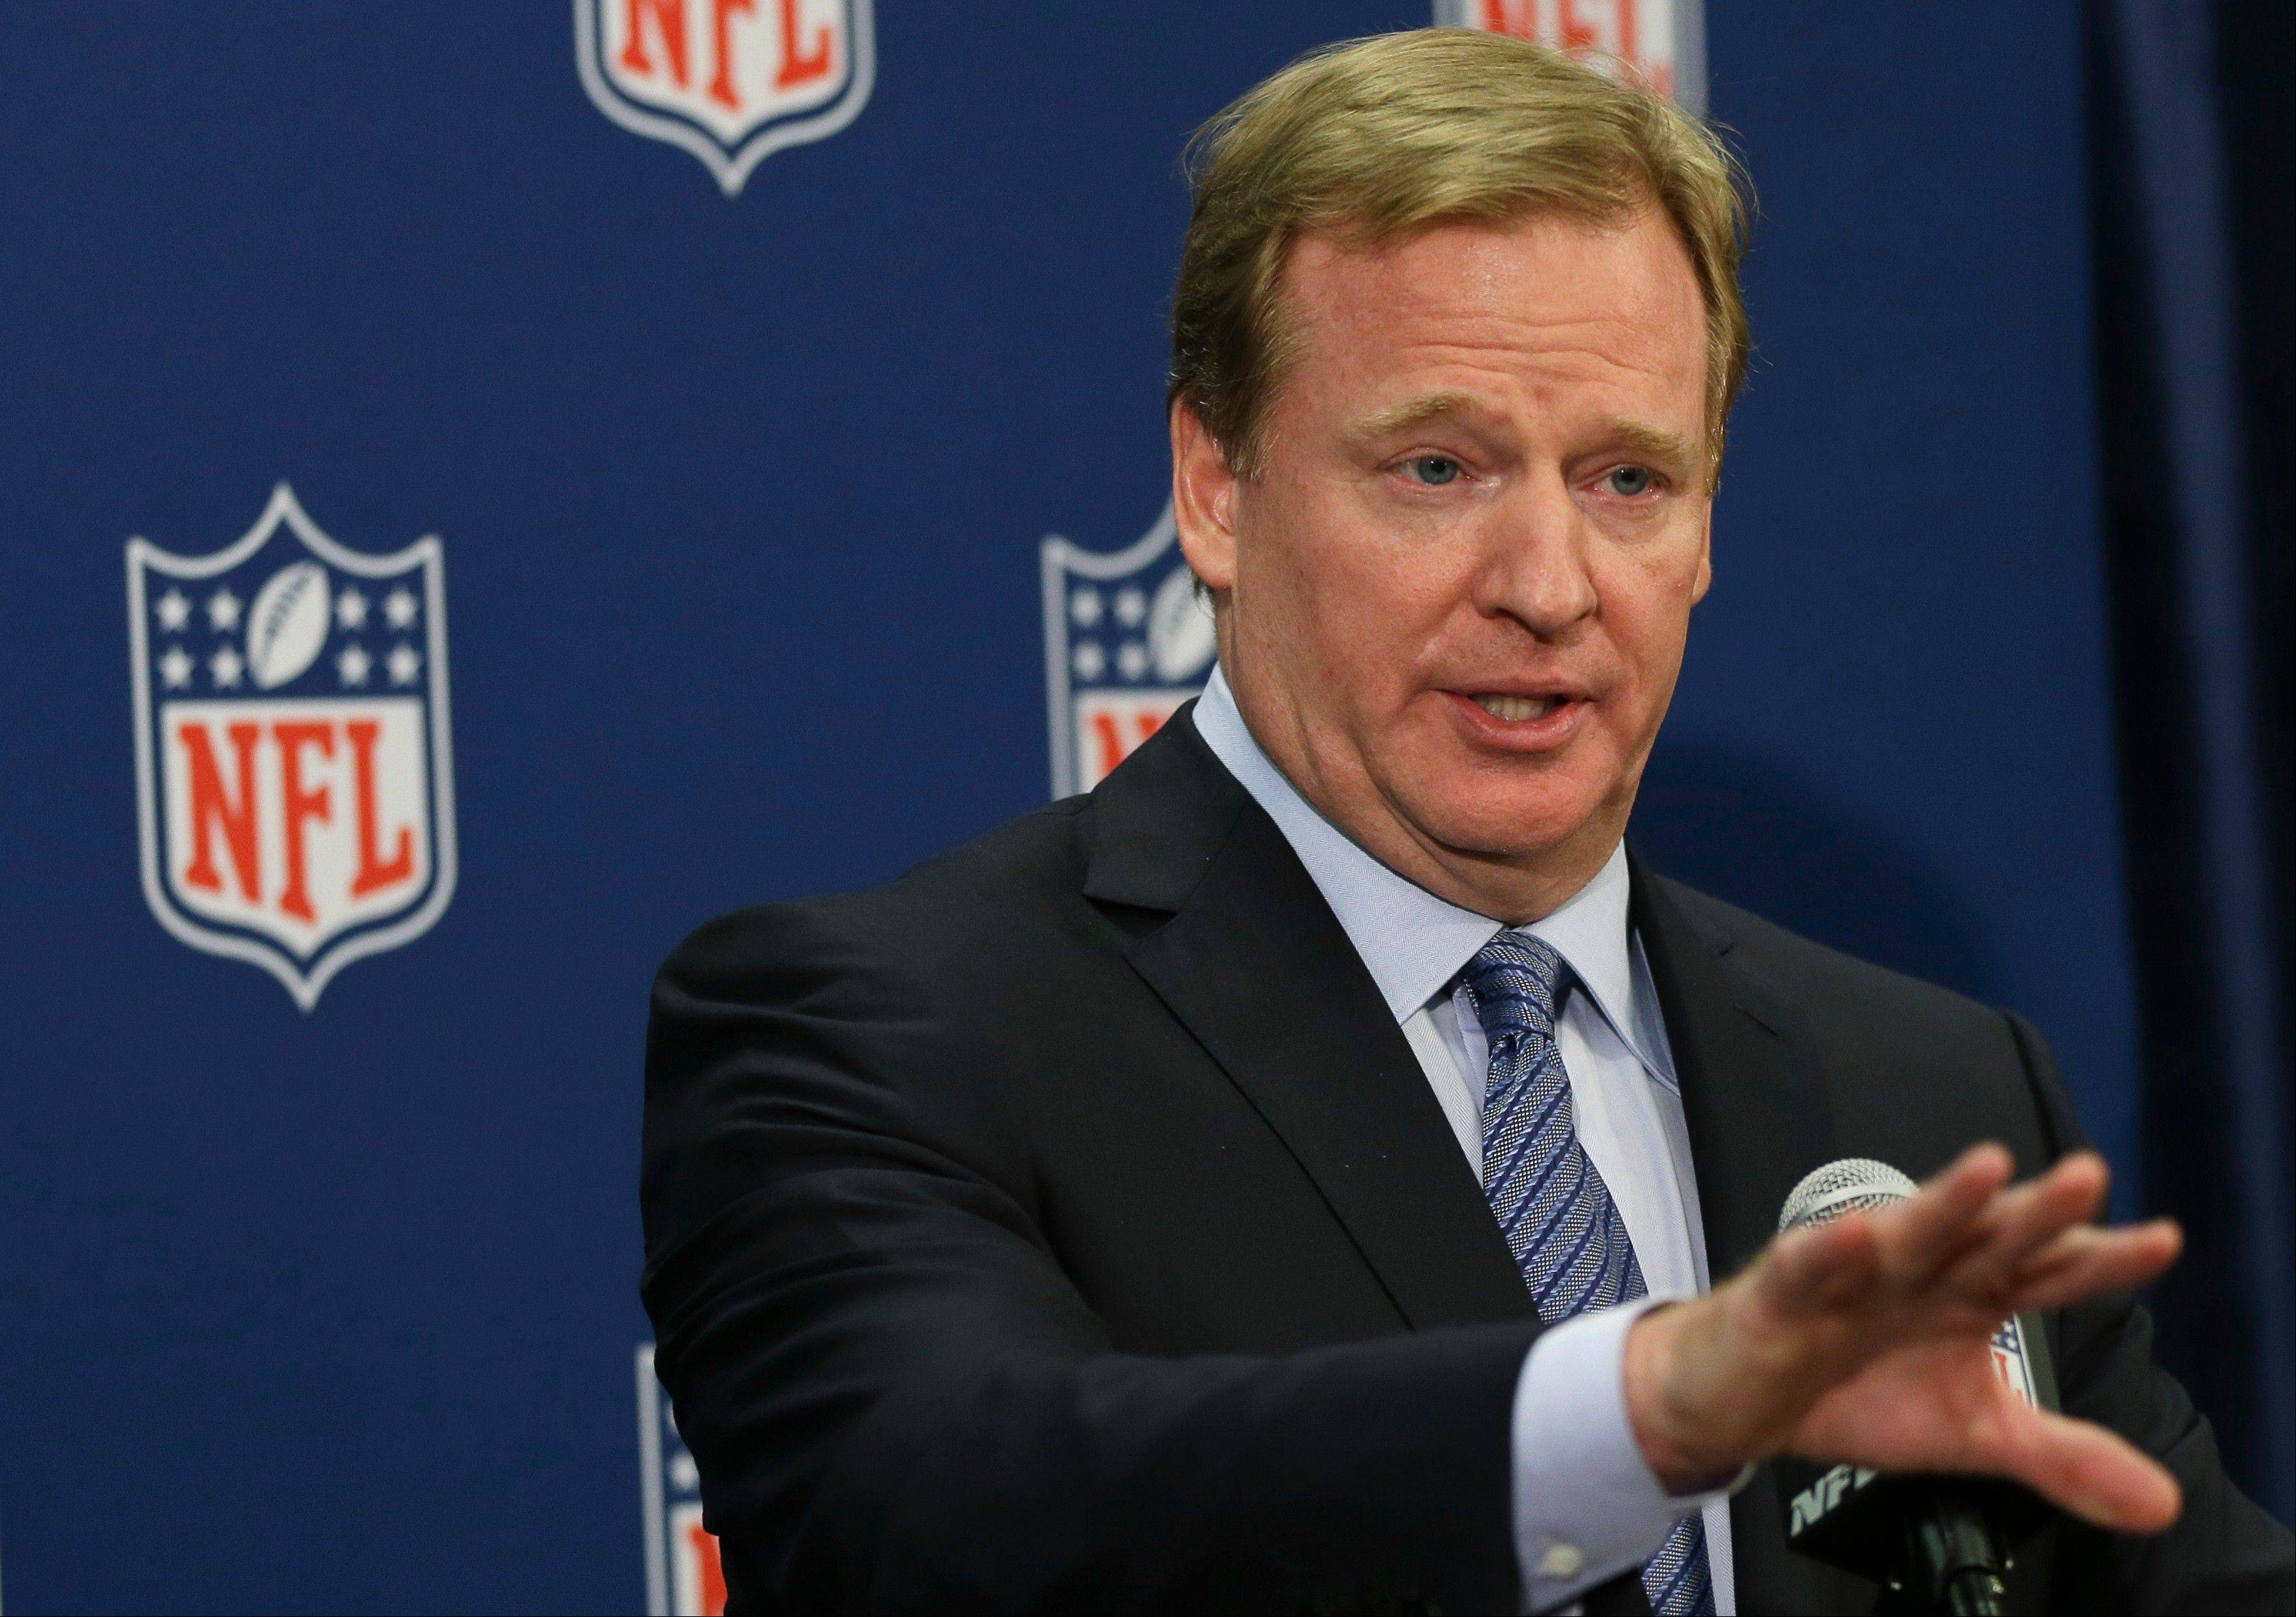 NFL Commissioner Roger Goodell has put an emphasis on reducing head injuries, but Mike North believes the league's policies are only causing more confusion.